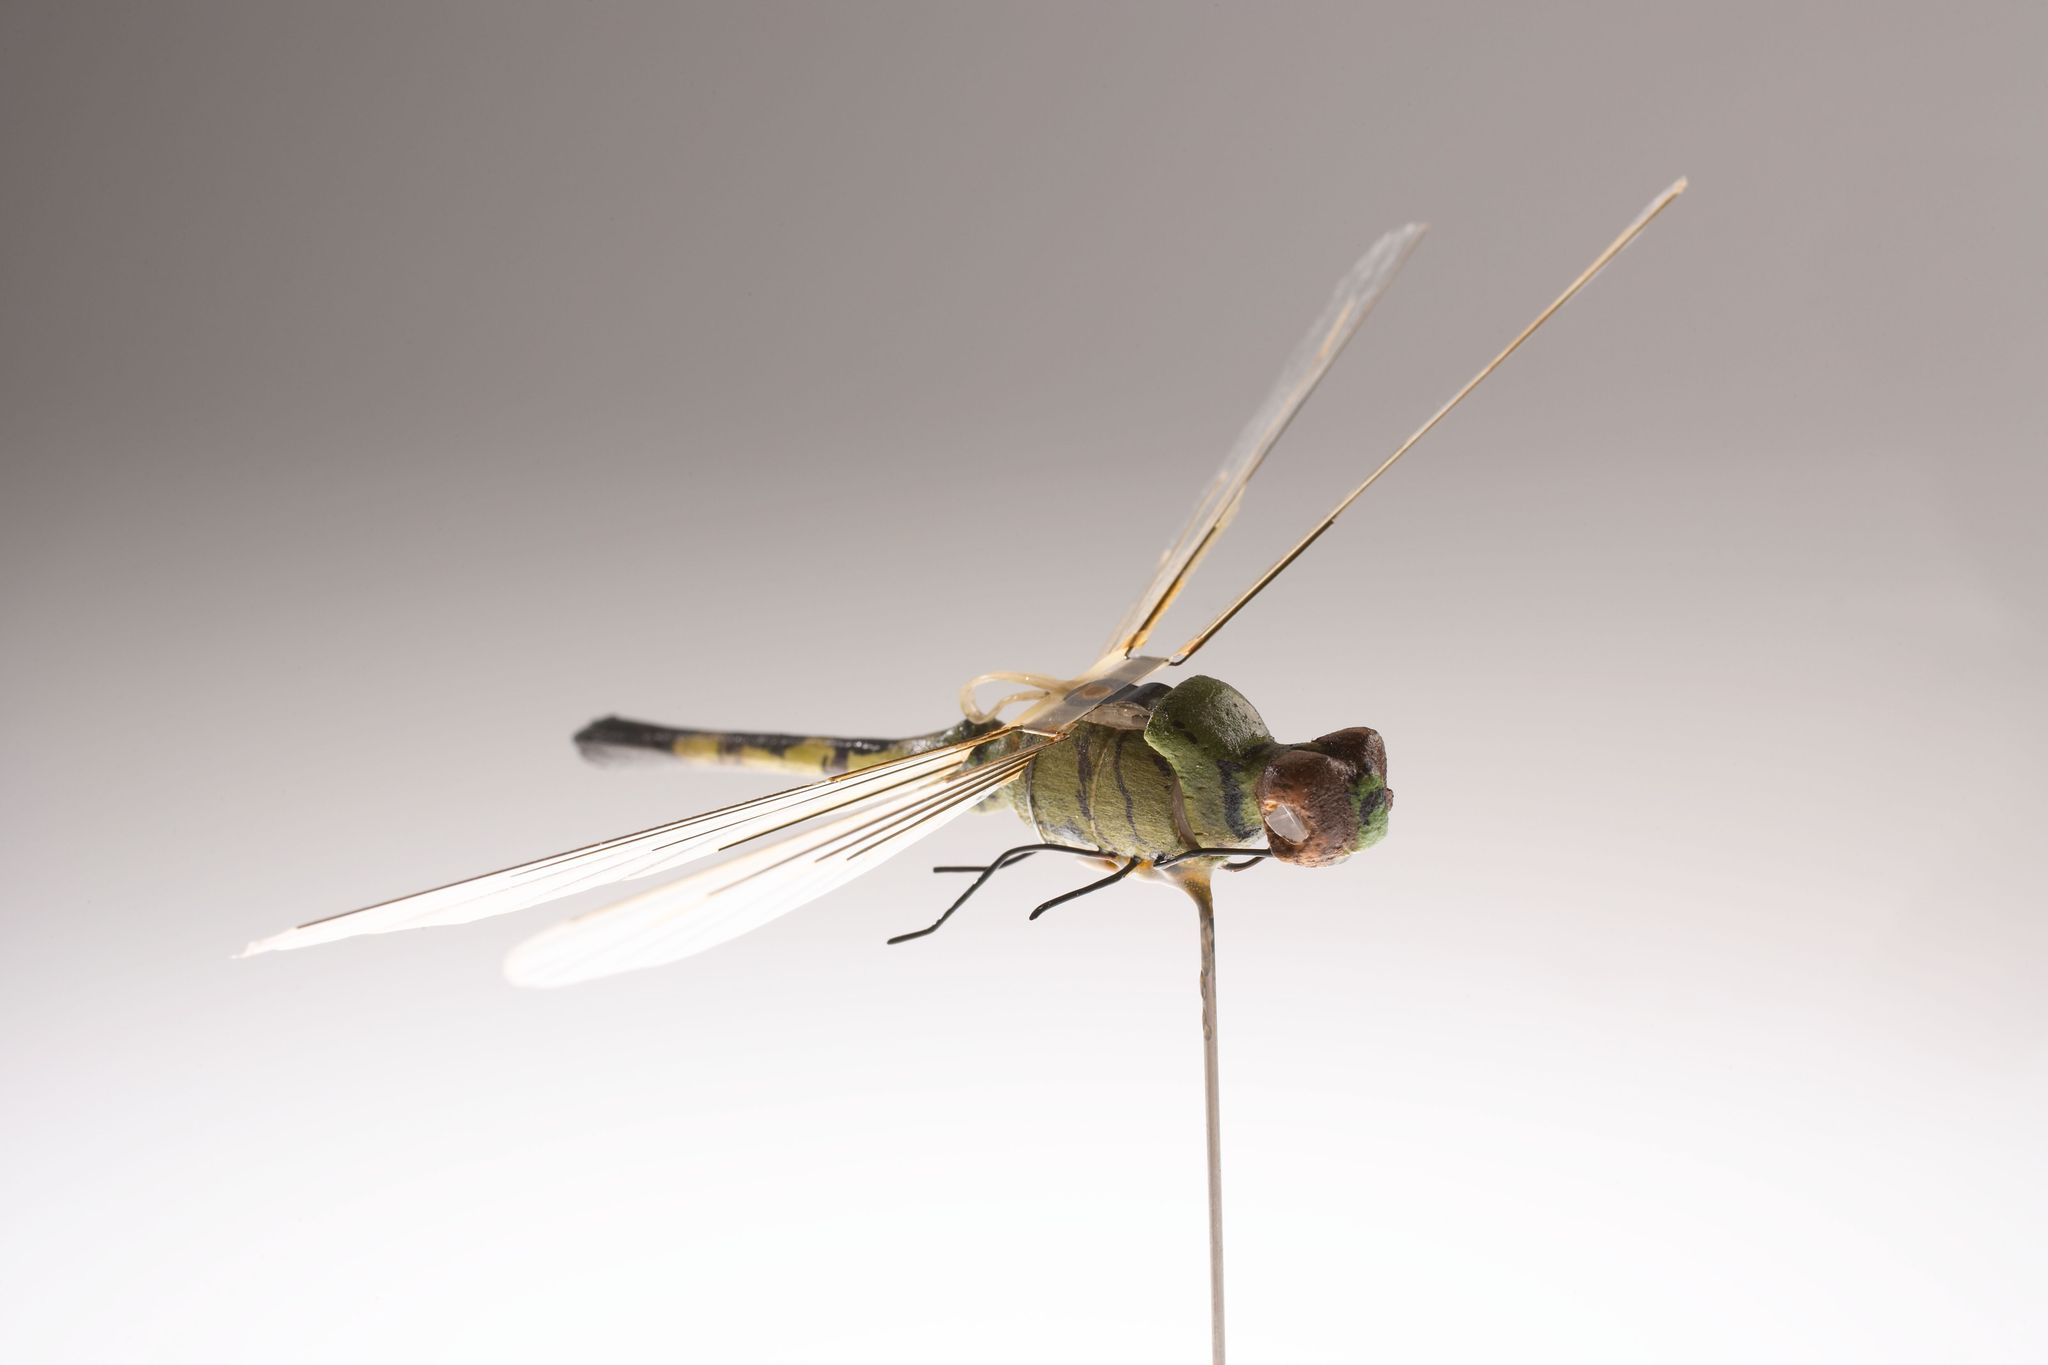 In the 1970s, the CIA Created a Robot Dragonfly Spy. Now We Know How It Works.